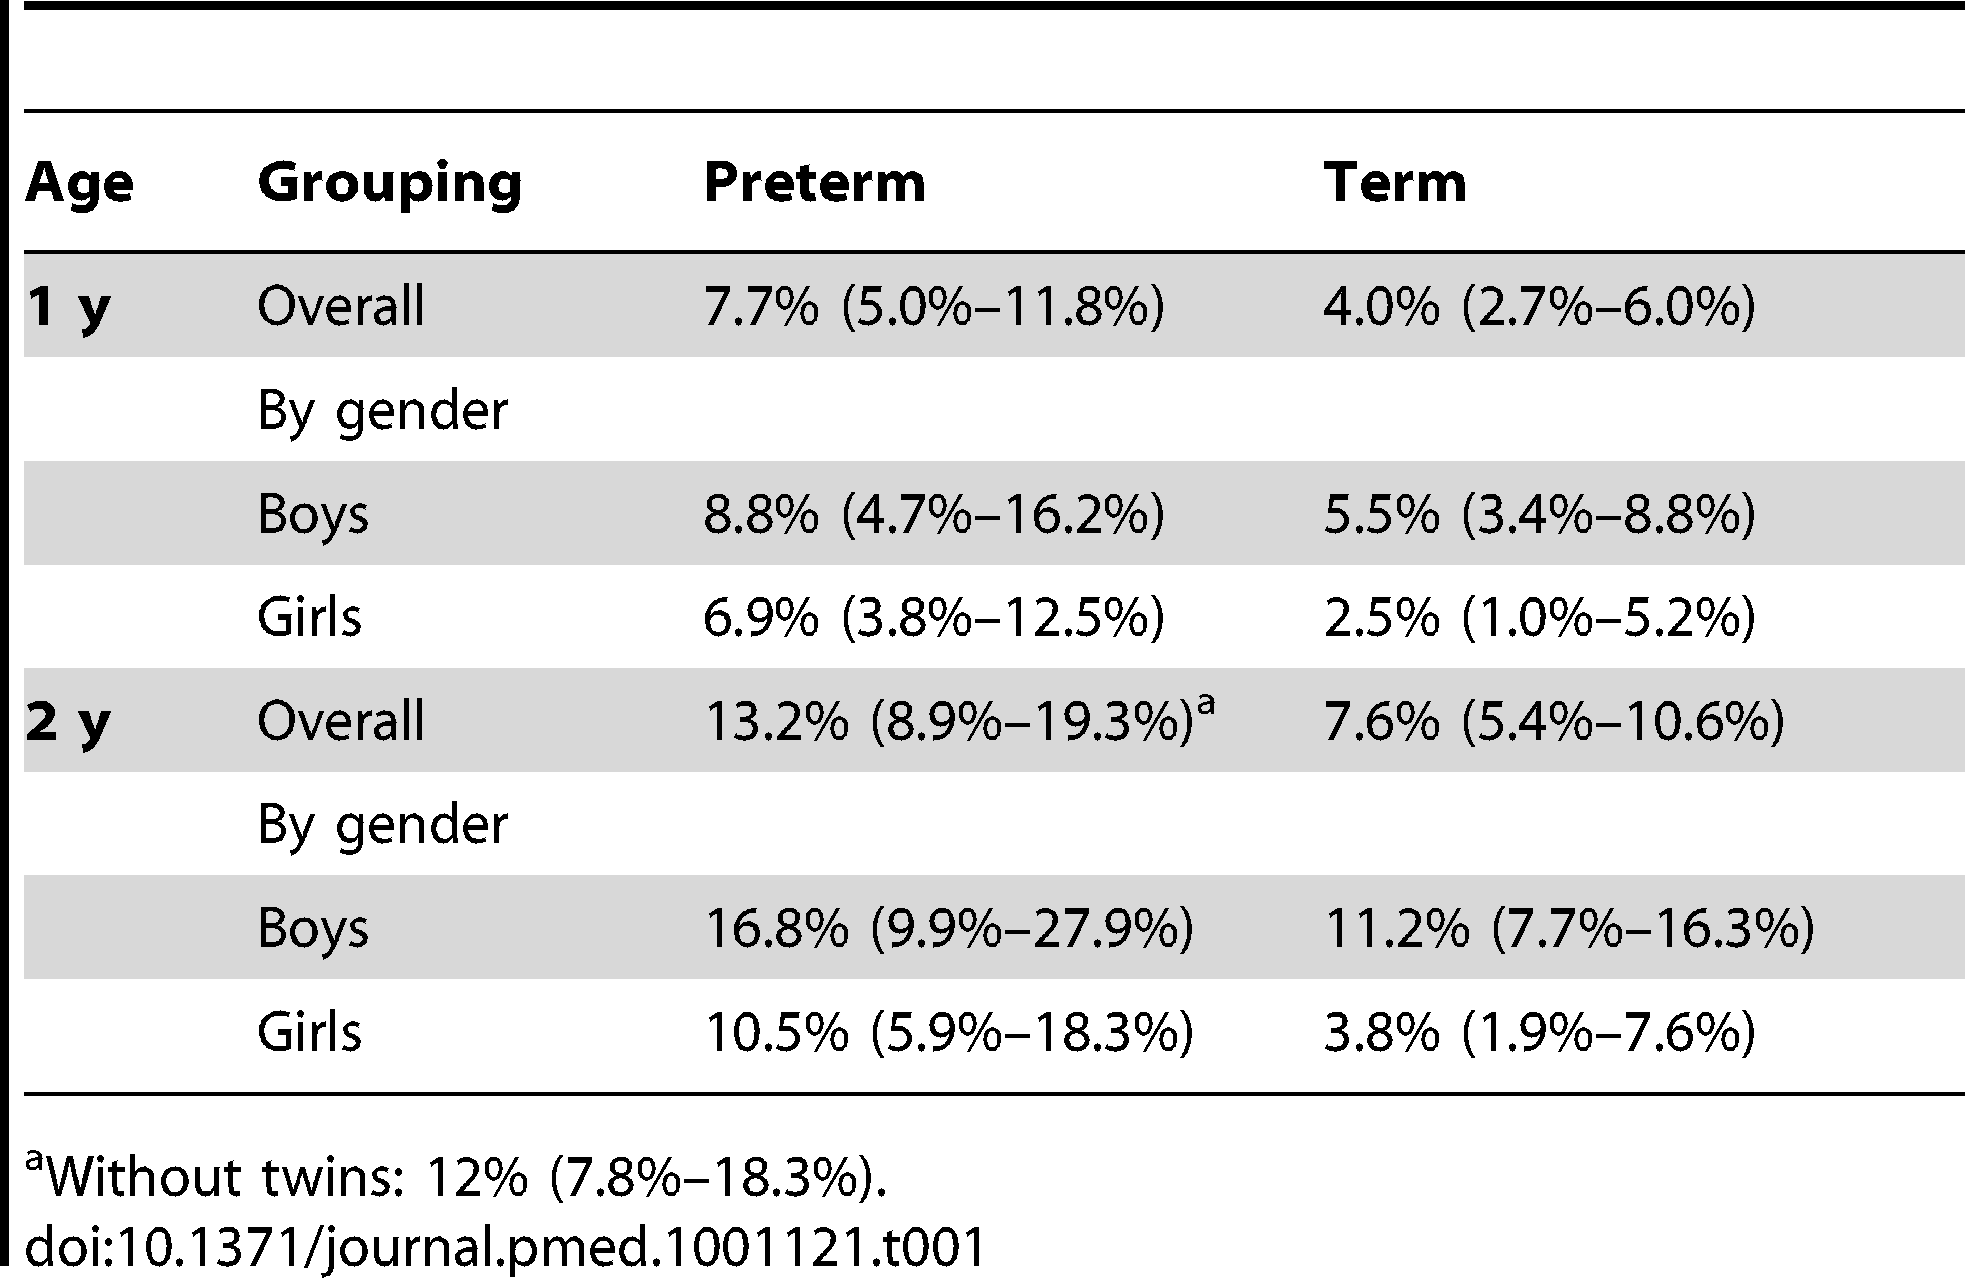 Mortality rates at 1 and 2 y for infants born preterm or at term (by gender) with twins included in analysis.